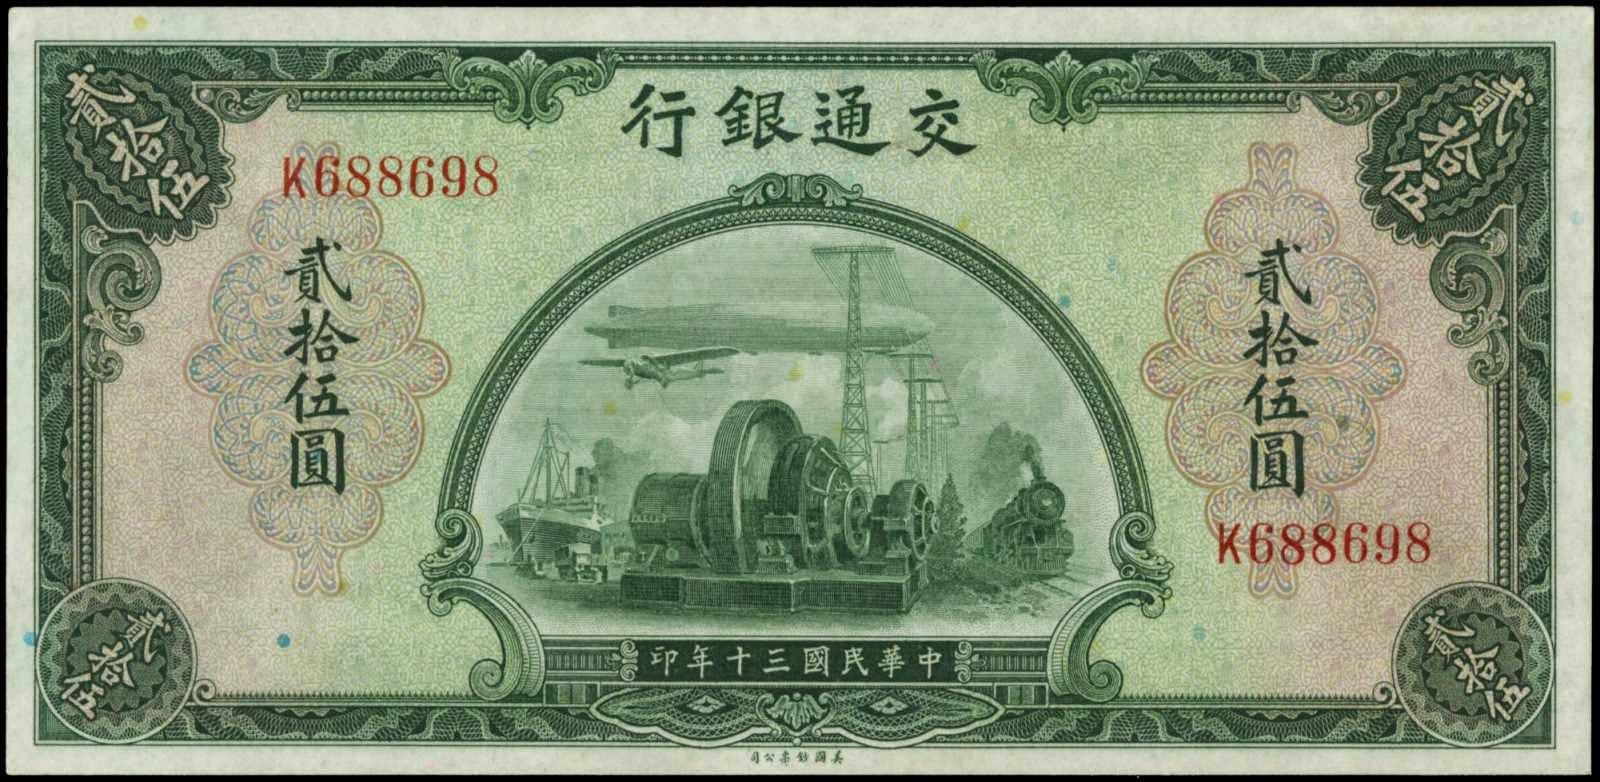 China banknotes 25 Yuan Zeppelin note 1941 Bank of Communications